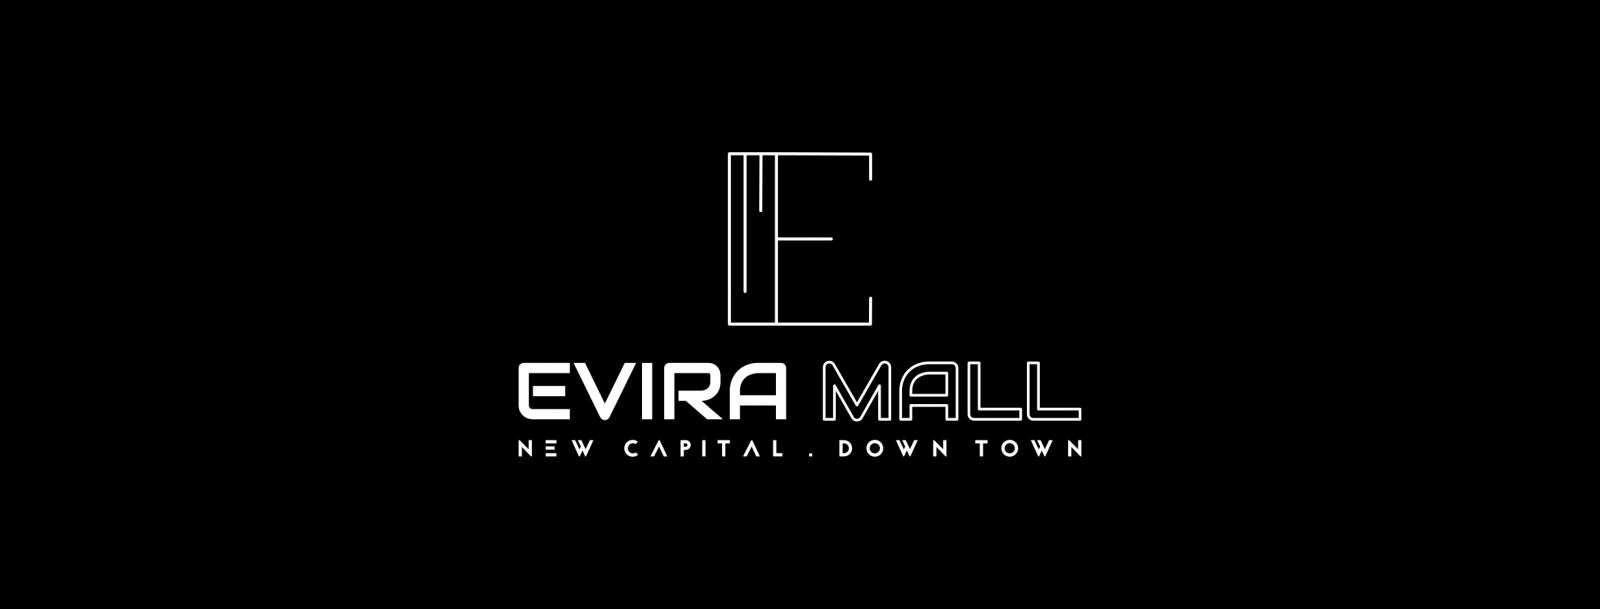 Evira Mall New Capital